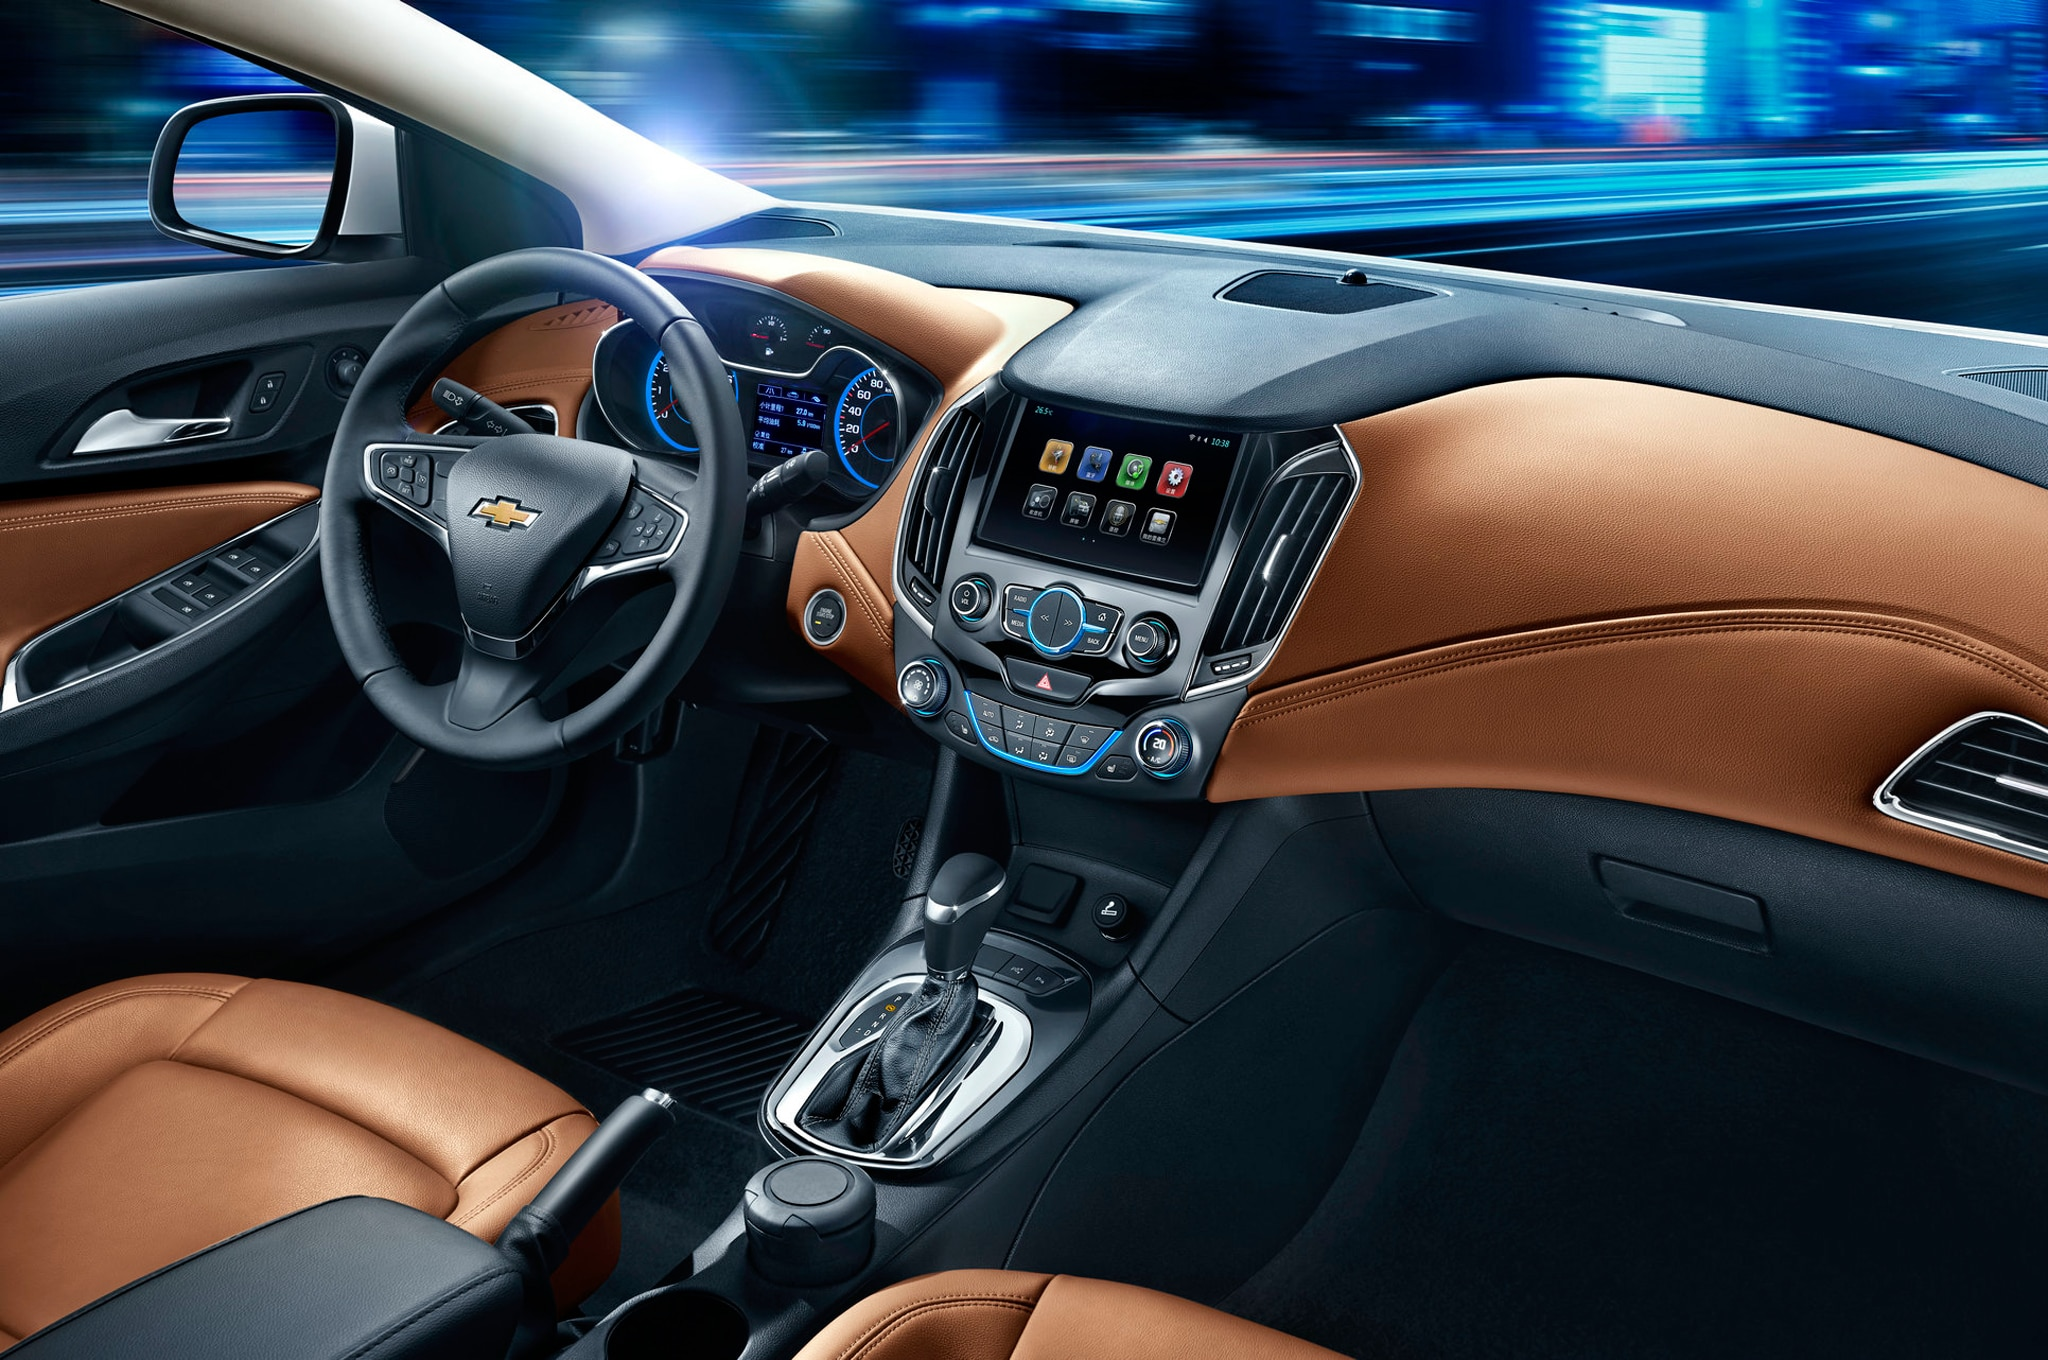 Next Gen Chevrolet Cruze Chinese Spec Interior1